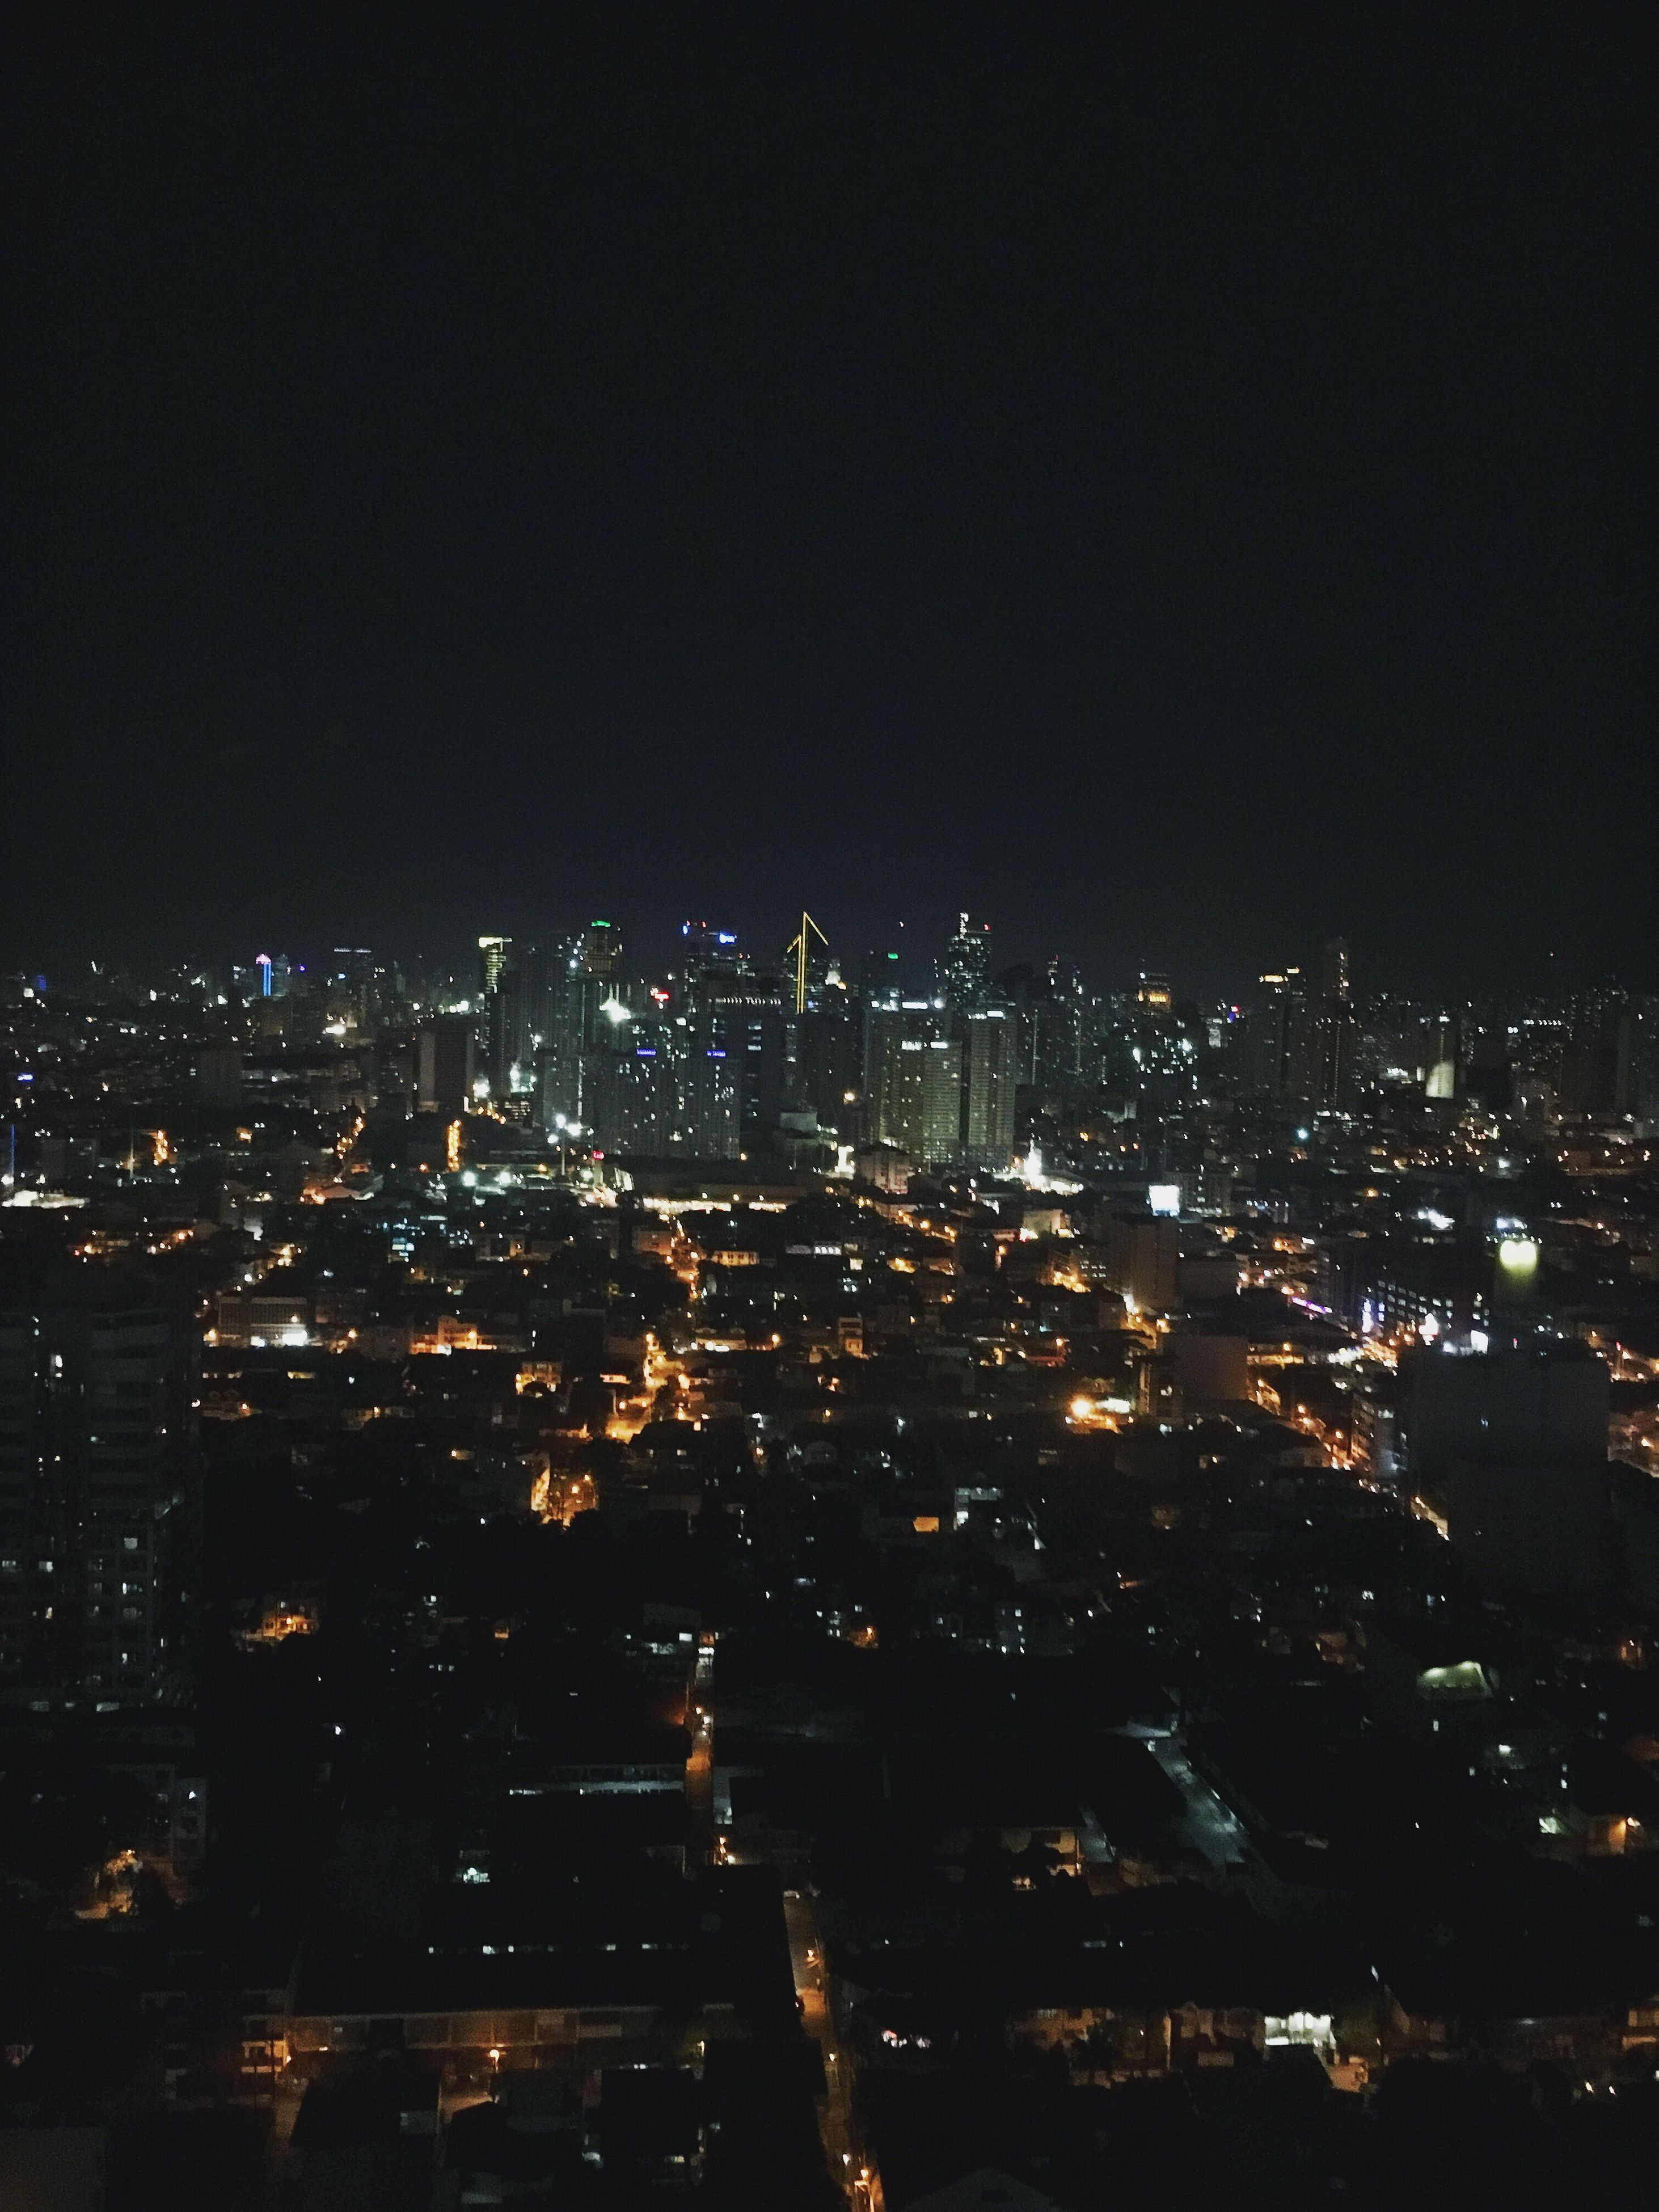 city, cityscape, night, illuminated, architecture, built structure, building exterior, crowded, skyscraper, clear sky, aerial view, urban skyline, city life, sky, tall - high, outdoors, modern, residential district, financial district, office building, no people, development, wide shot, urban scene, tall, settlement